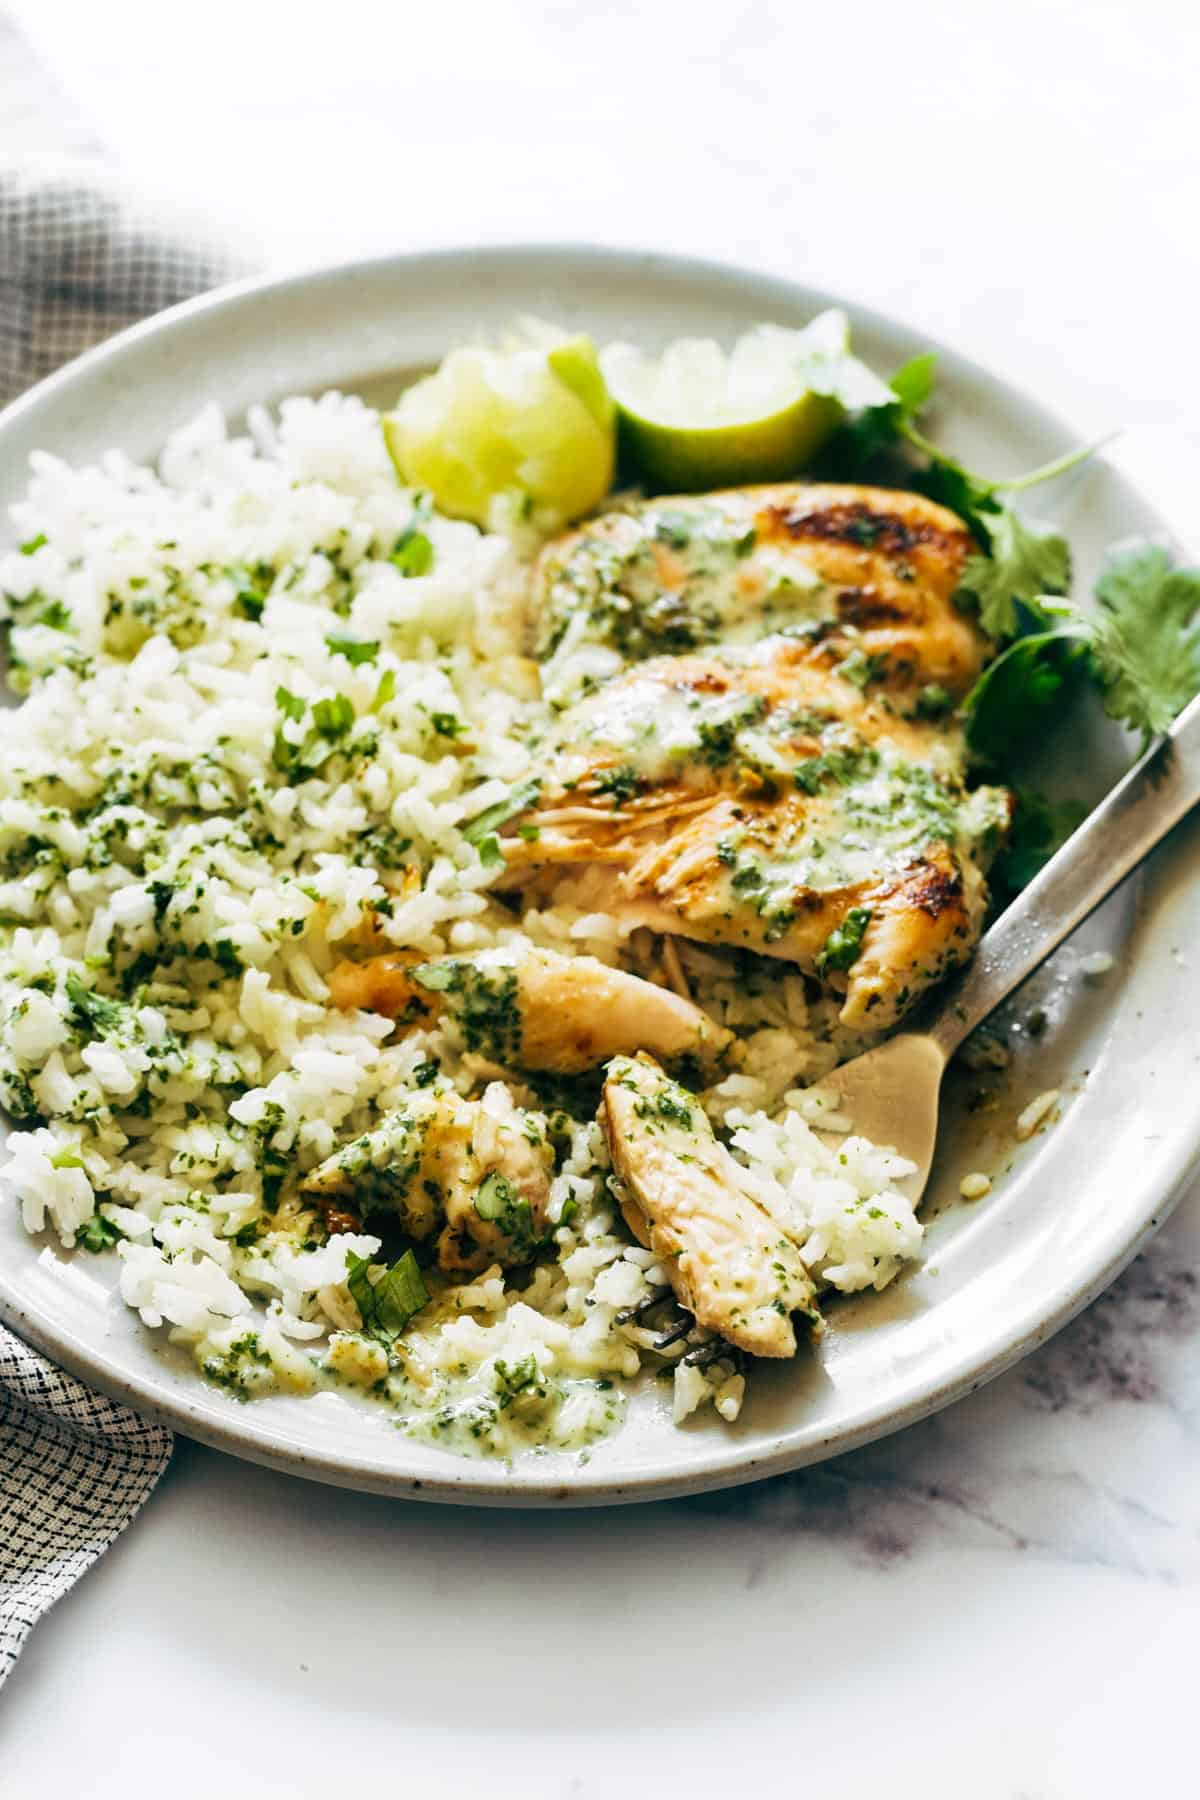 Coconut Lime Grilled Chicken and rice with bite on fork.